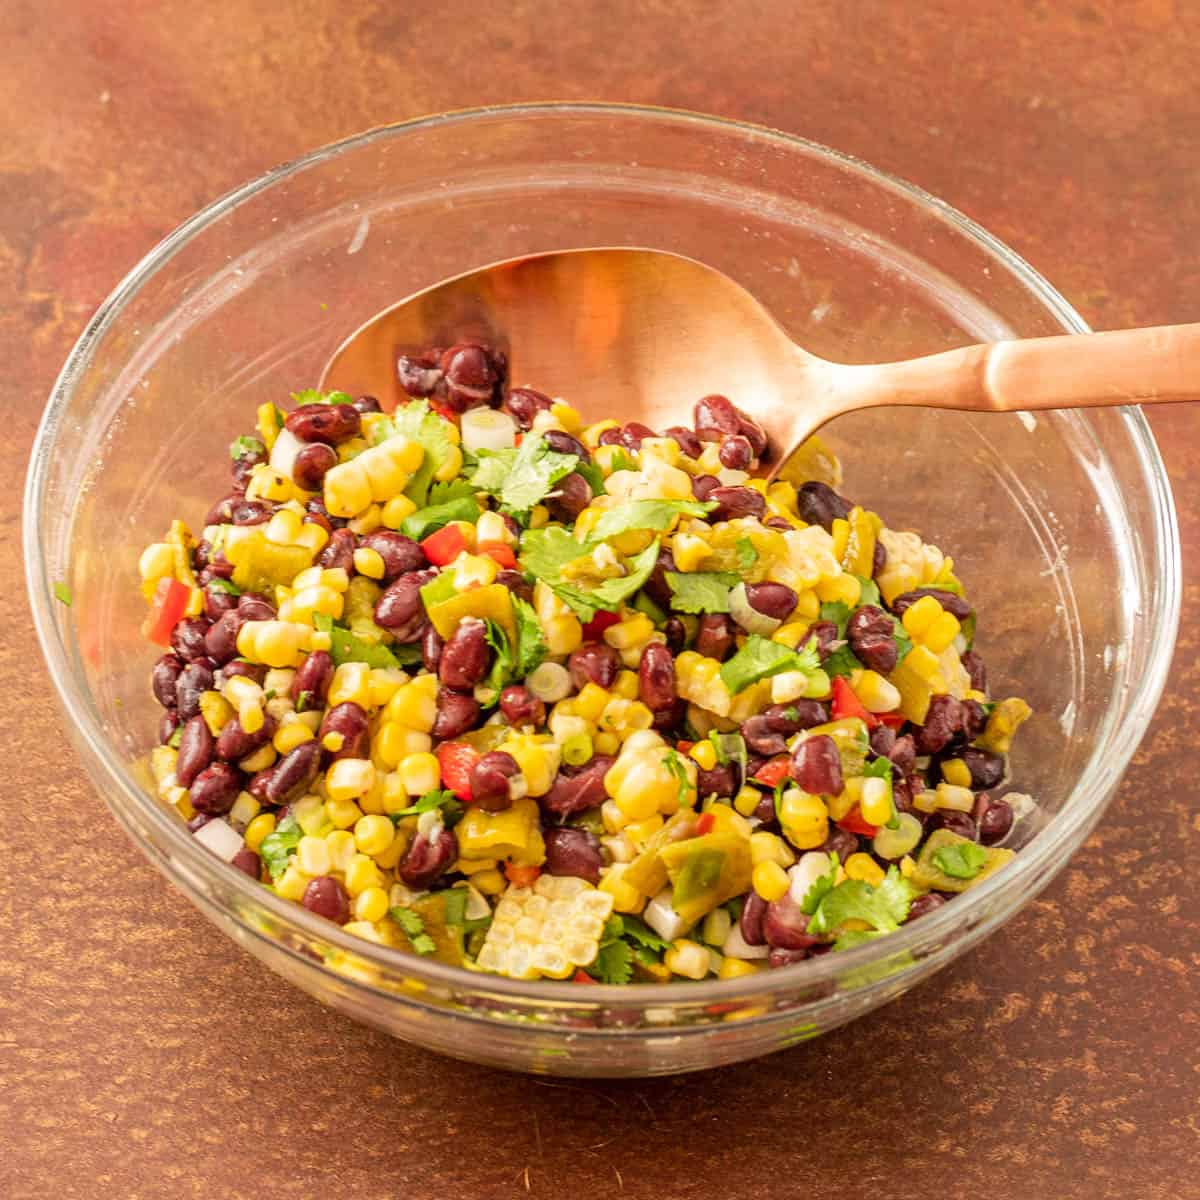 The clear glass bowl with the beans, corn, chiles, cilantro, and scallions mixed together with fresh lime juice.